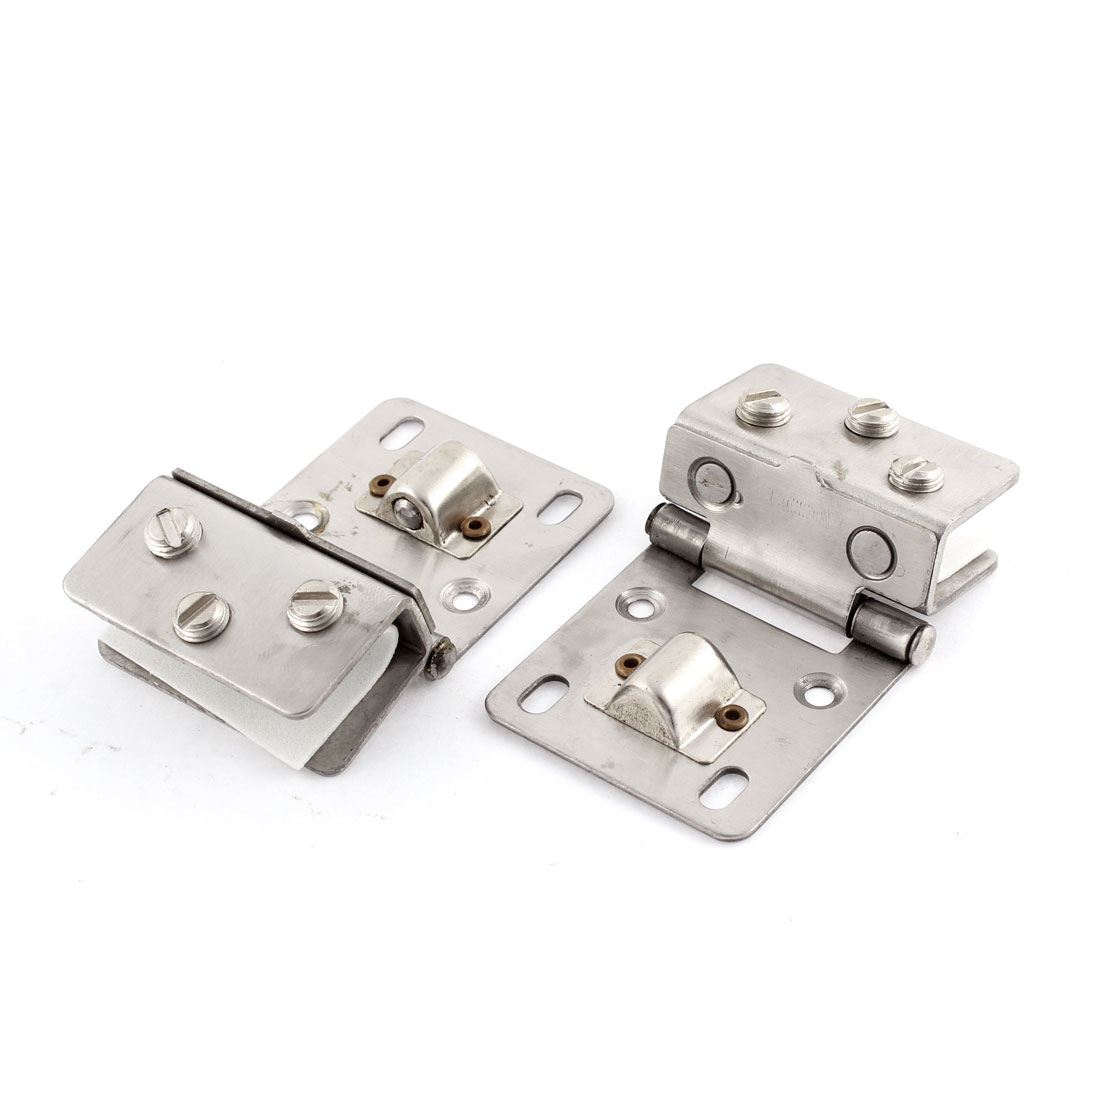 2 Pcs Silver Tone Fitting Clip Door Hinge Rectangular Glass Clamp